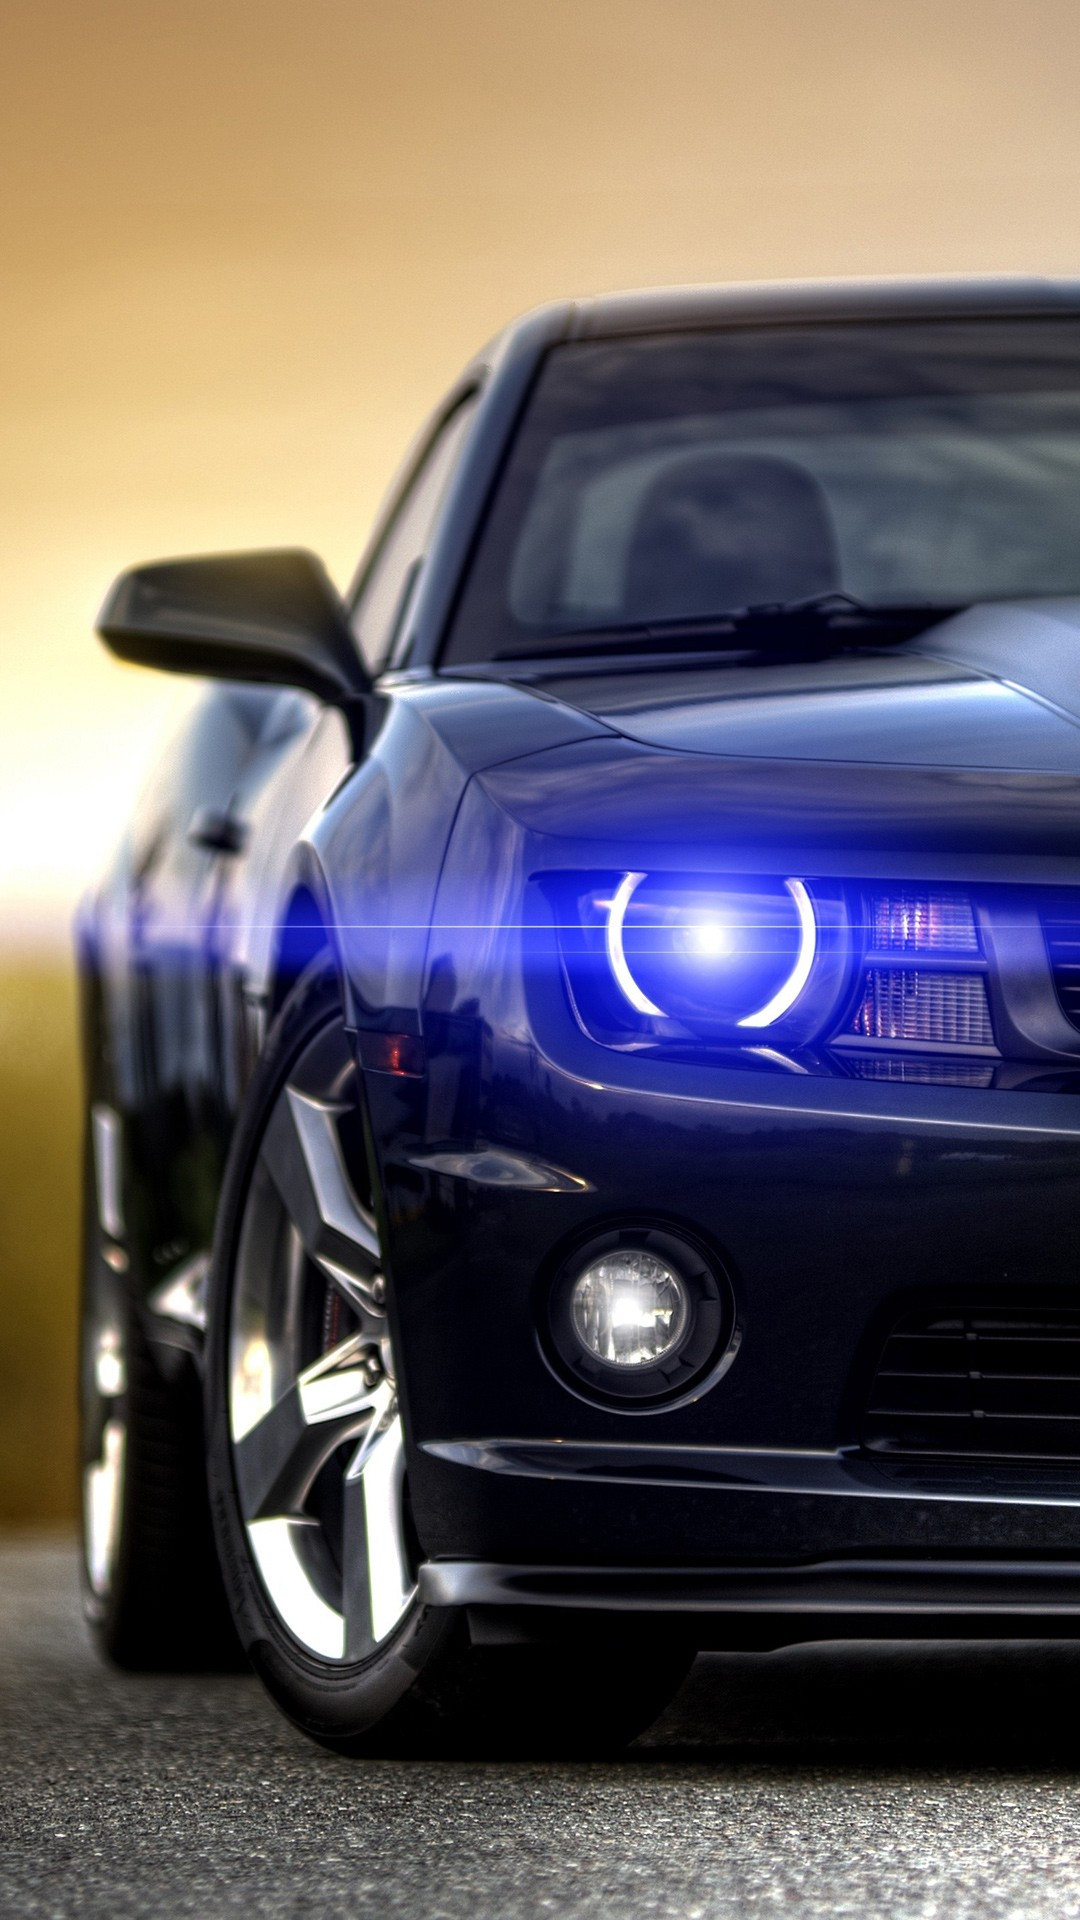 Chevrolet Camaro Muscle Car Wallpapers - Car Hd Wallpaper For Mobile , HD Wallpaper & Backgrounds